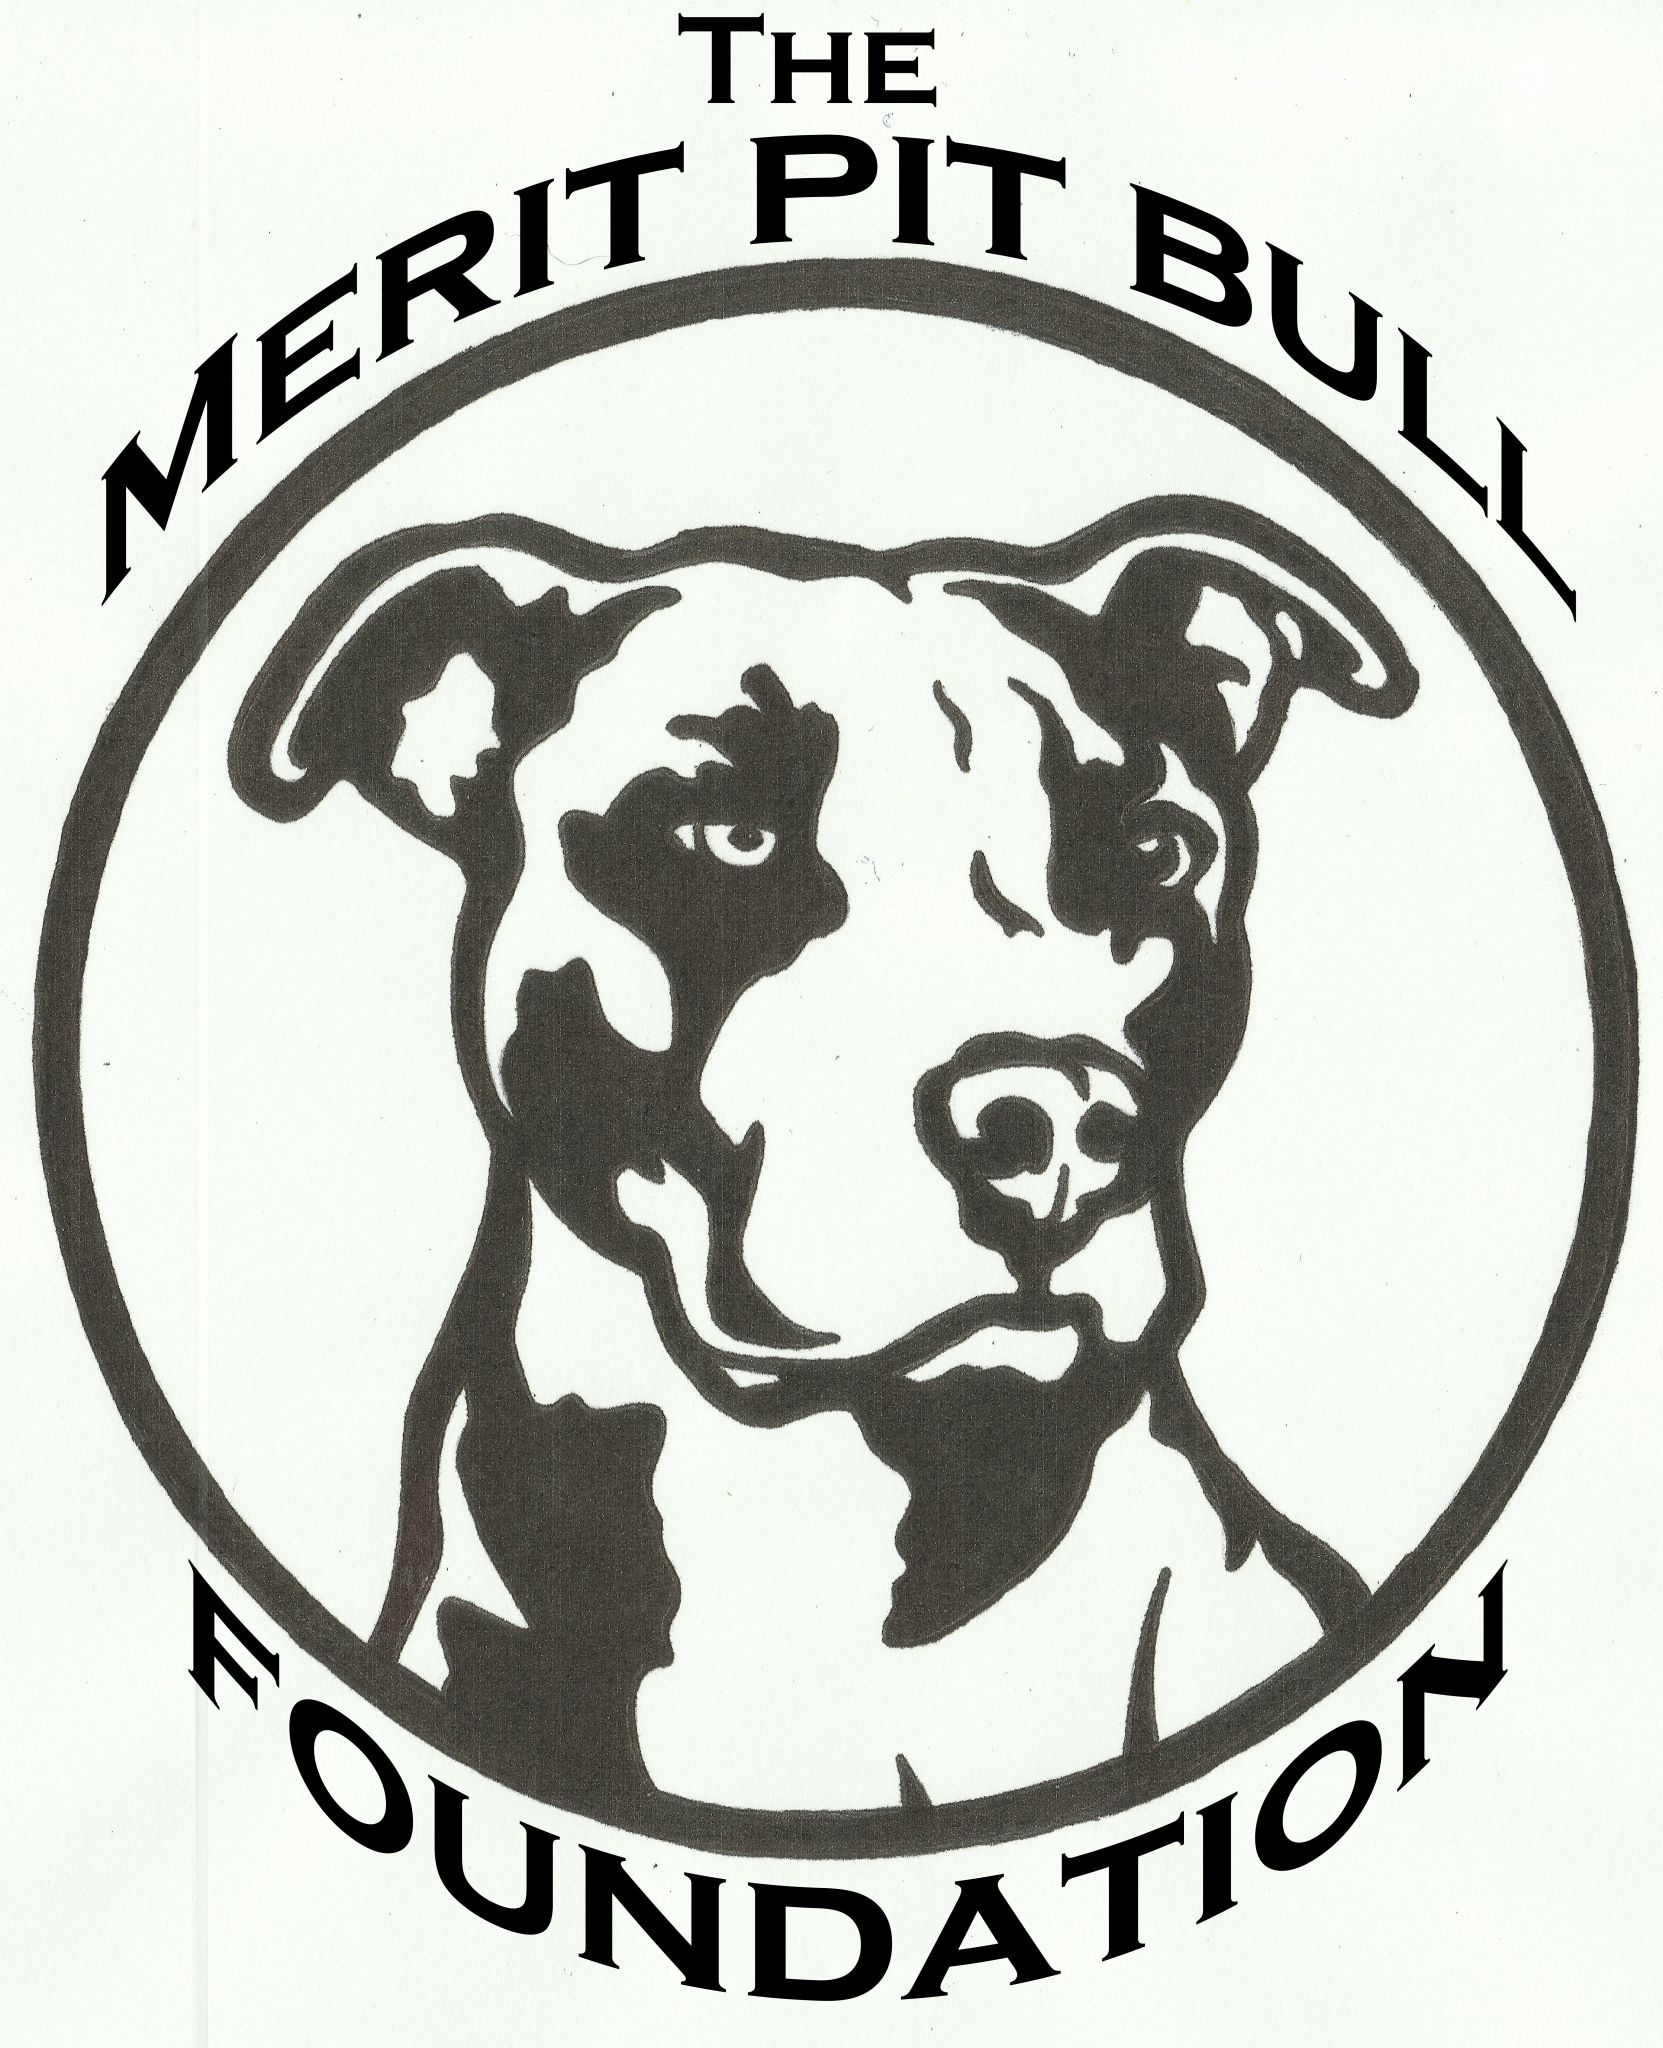 The Merit Pit Bull Foundation